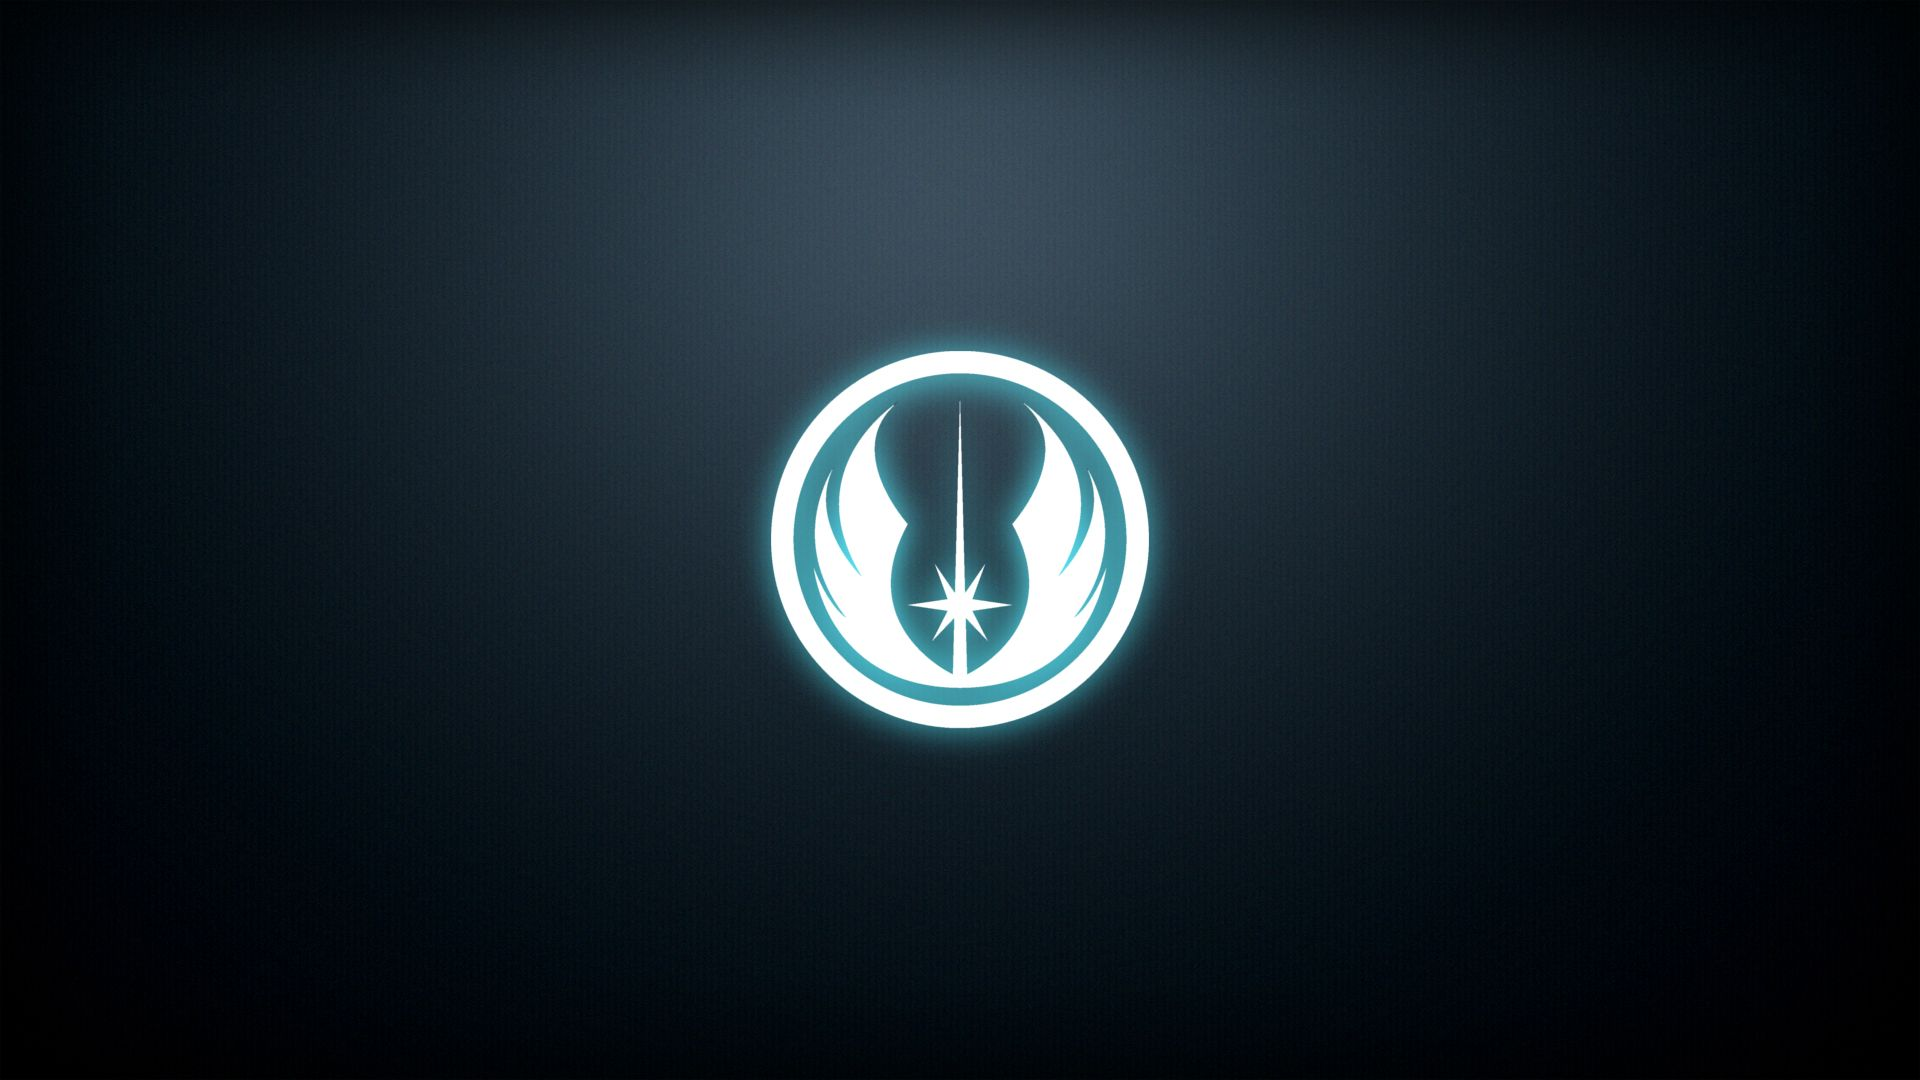 Jedi Order emblem that I made [1920x1080] Wallpaper Wallpapers 1920x1080